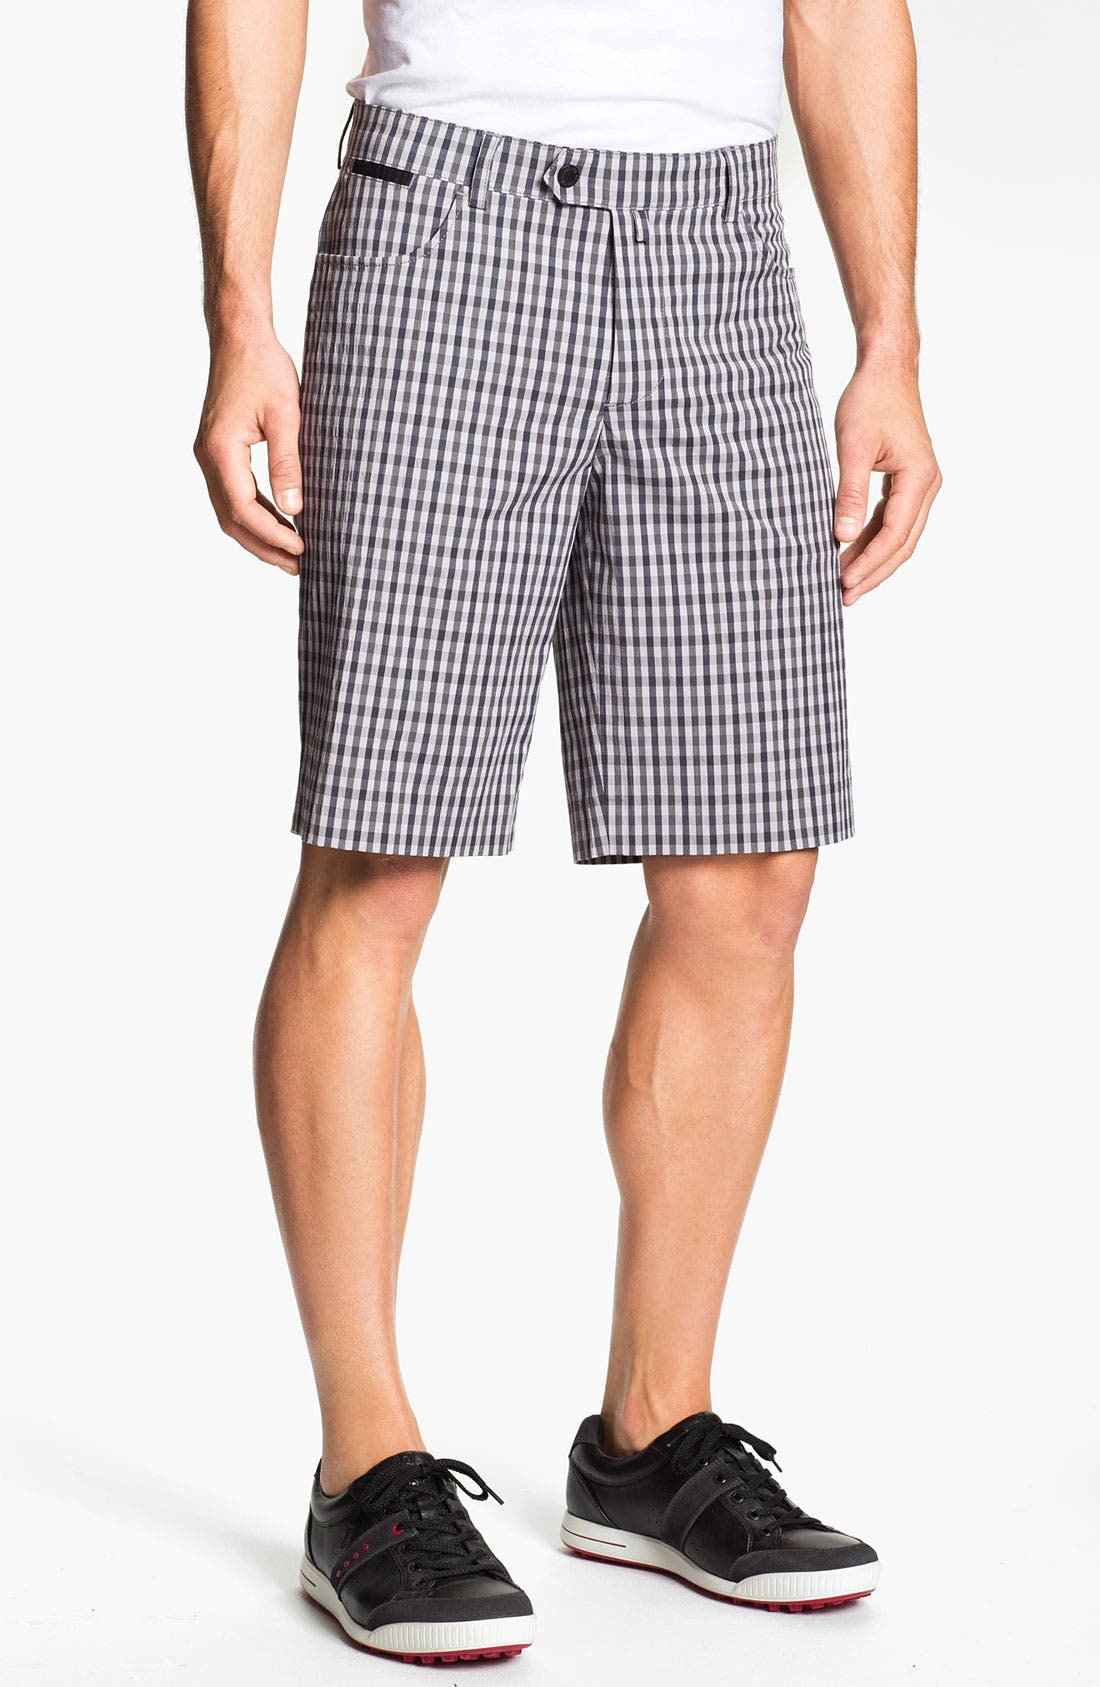 Main Image - Aquascutum Golf 'Sport Check' Golf Shorts